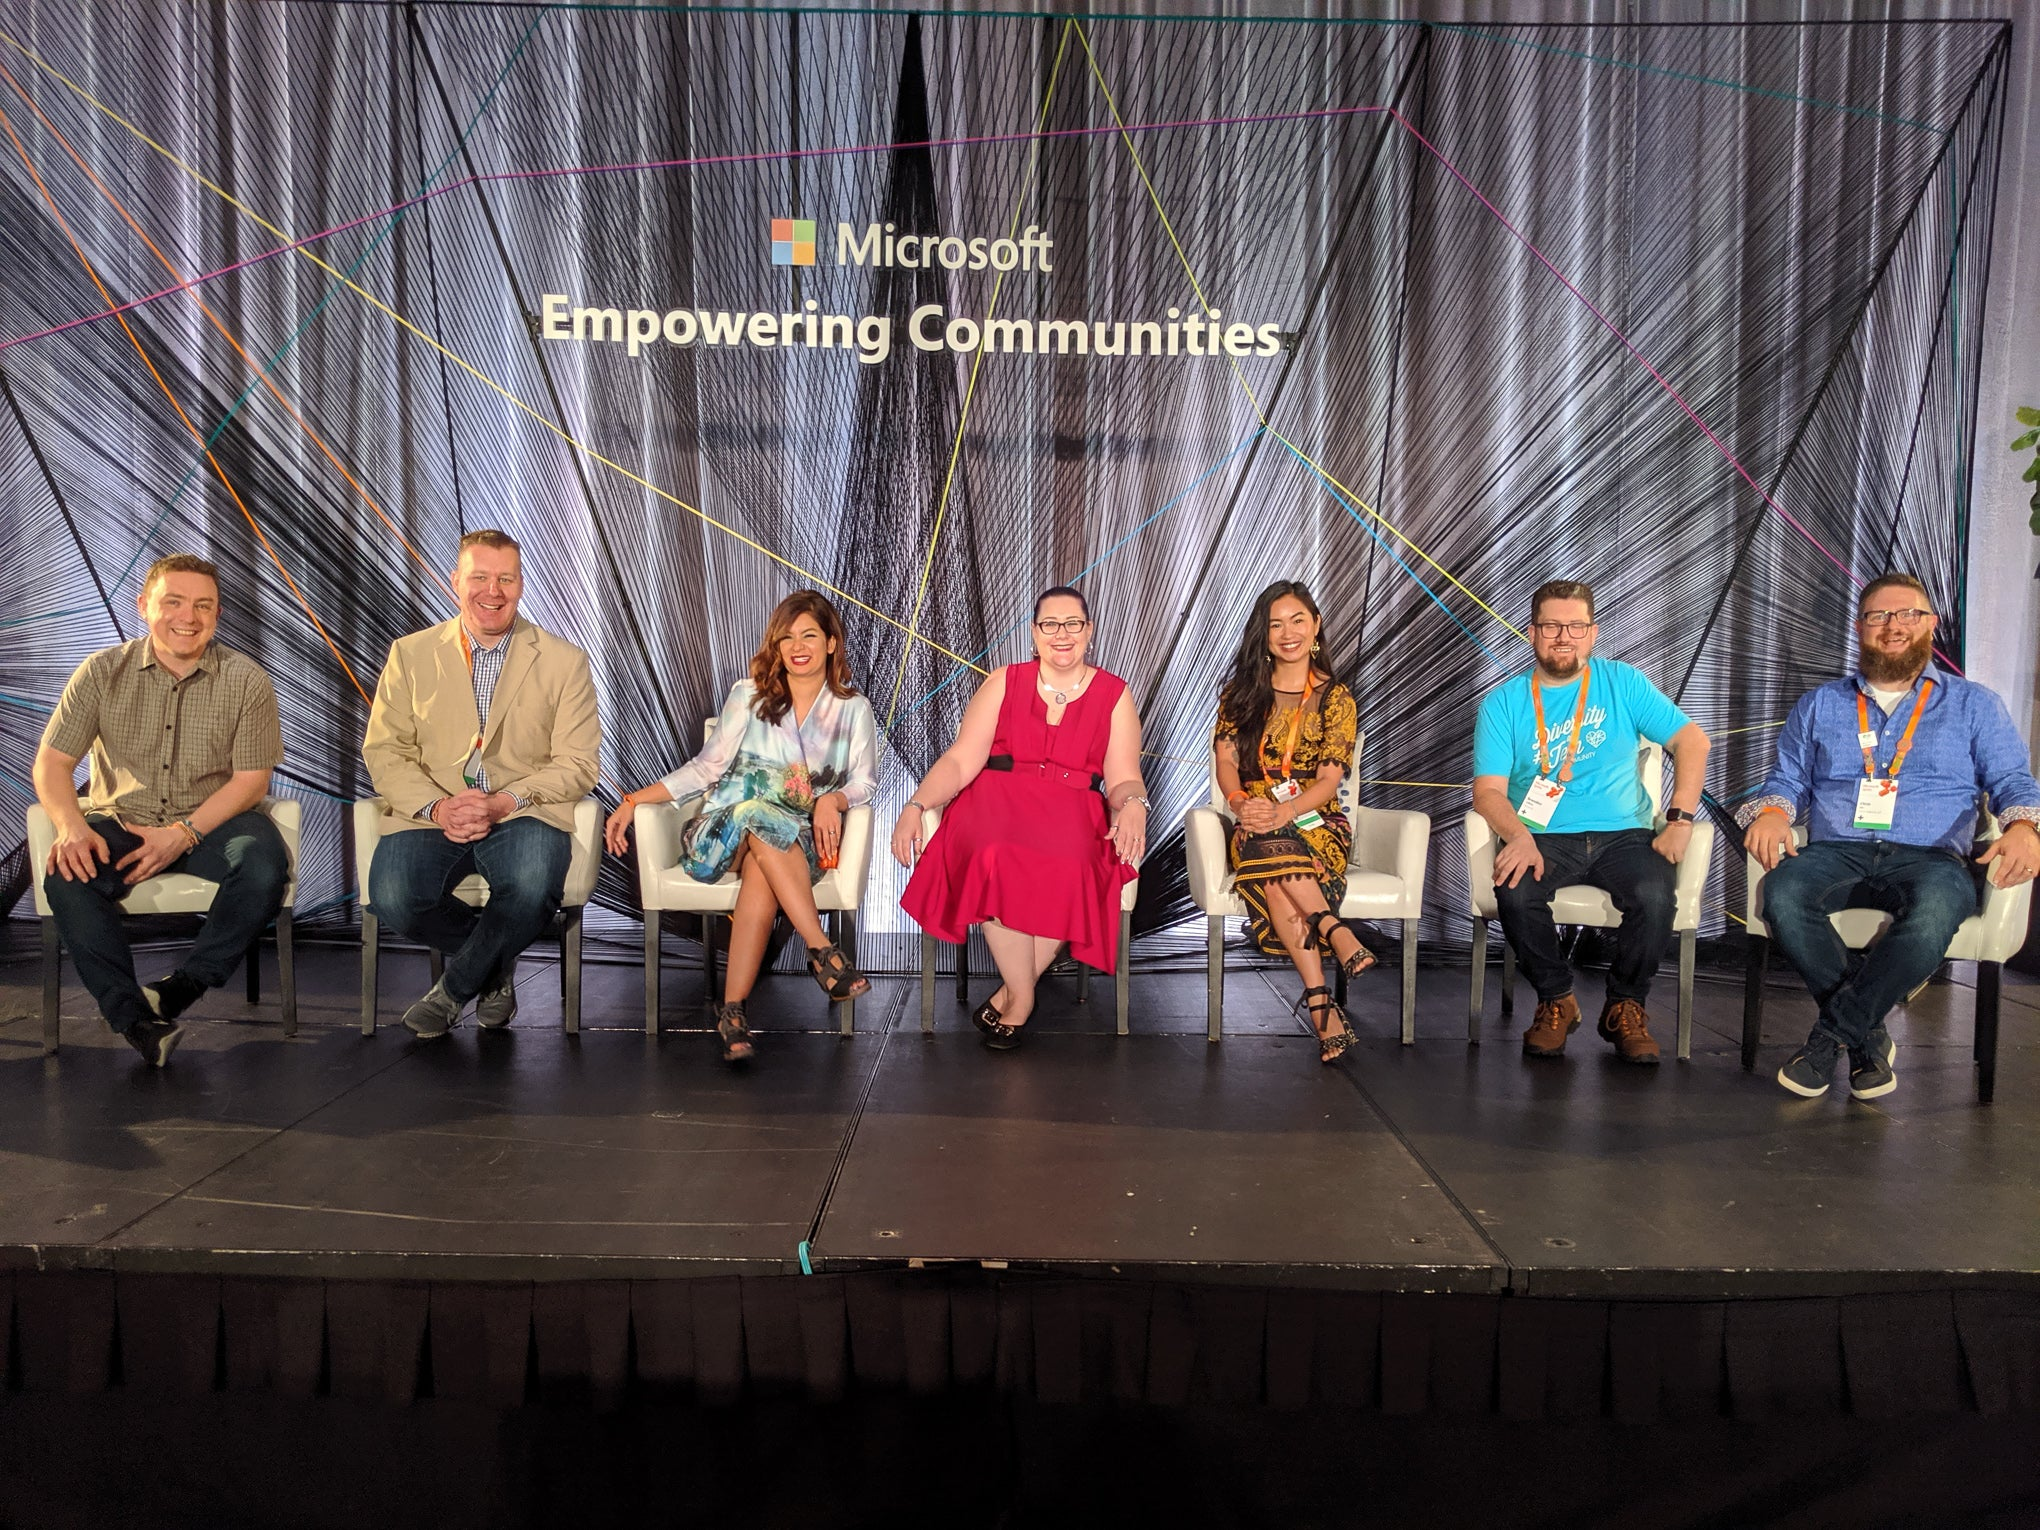 Microsoft Ignite 2019 Diversity in Tech Panel - Intersectionality: The Real Super Power with Paul Warren, Glenn McClellen, Dona Sarkar, Jess Dodson, Kristine Zwick, Chris Gill, and Brandon LeBlanc